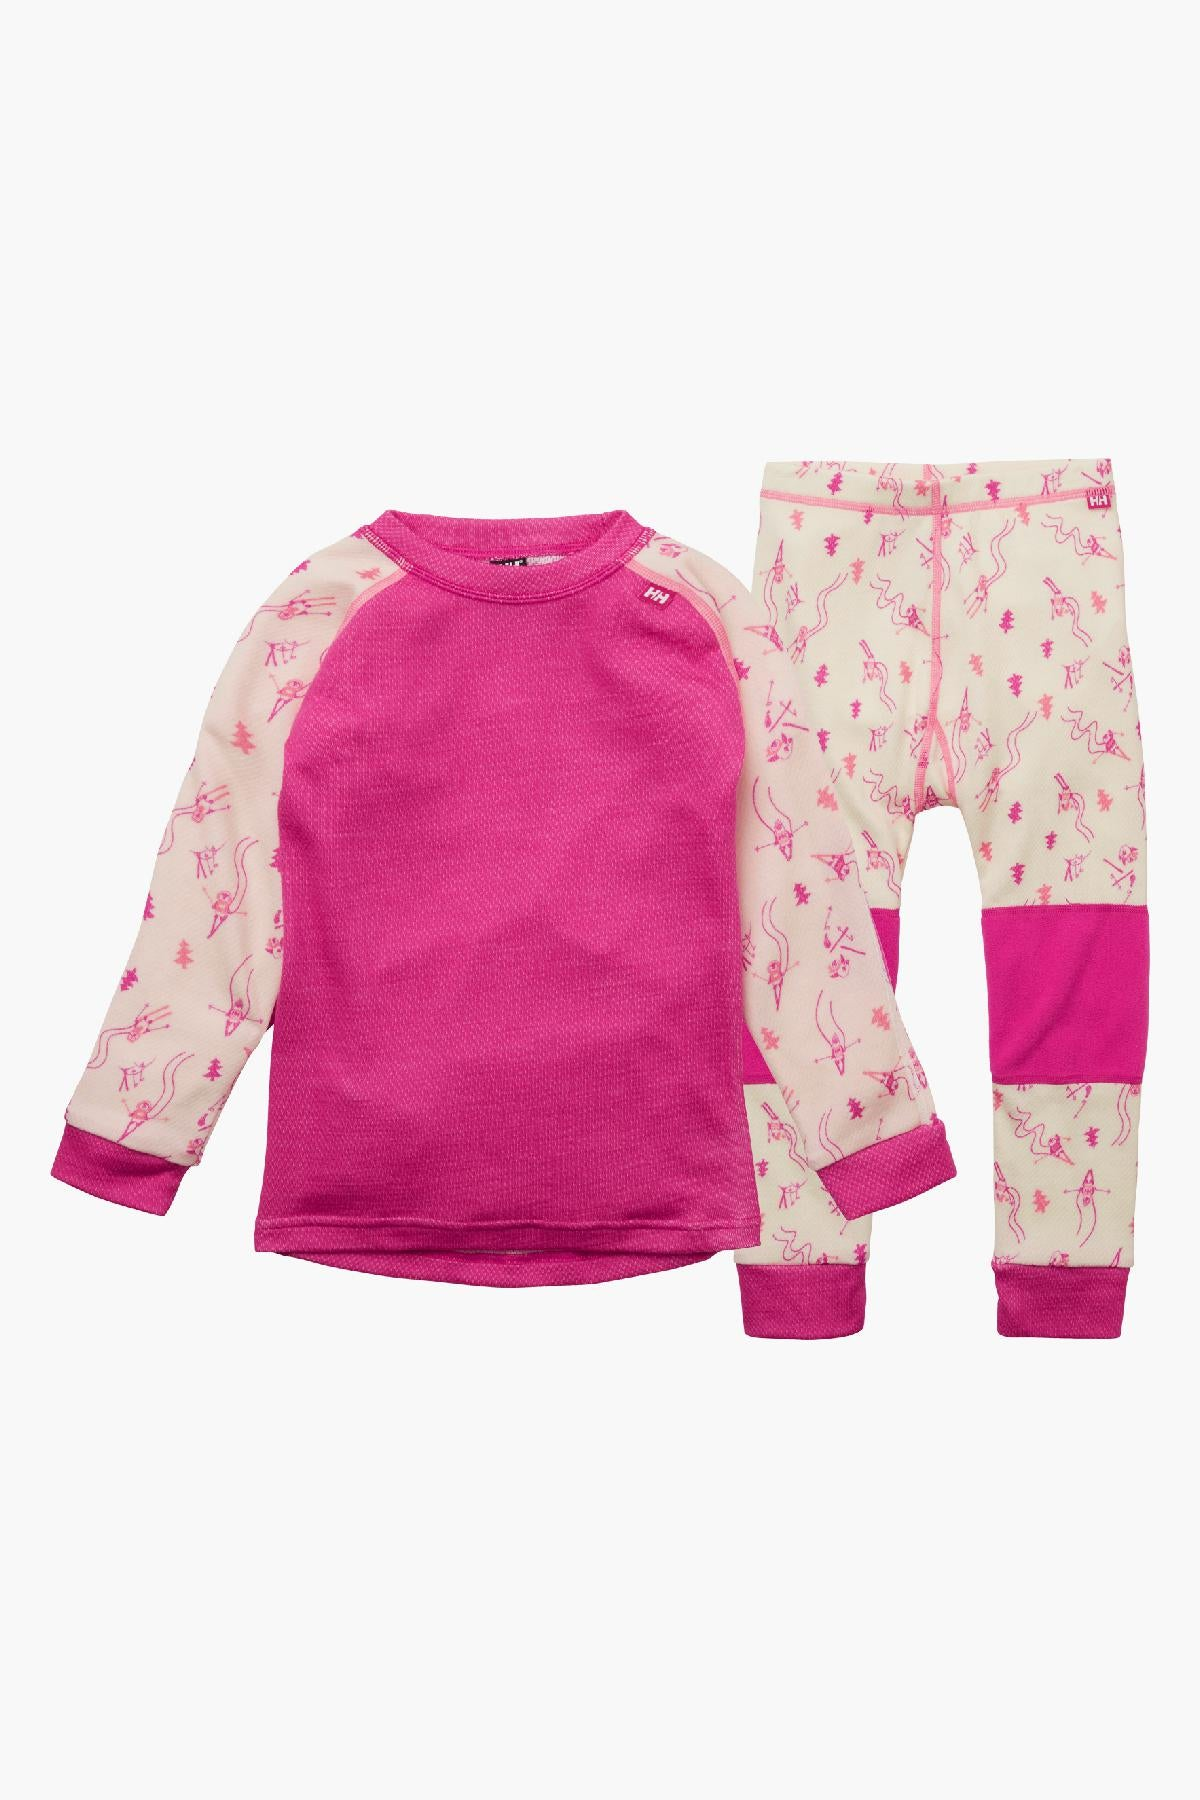 Helly Hansen Lifa Merino Kids Baselayer Set - Off White